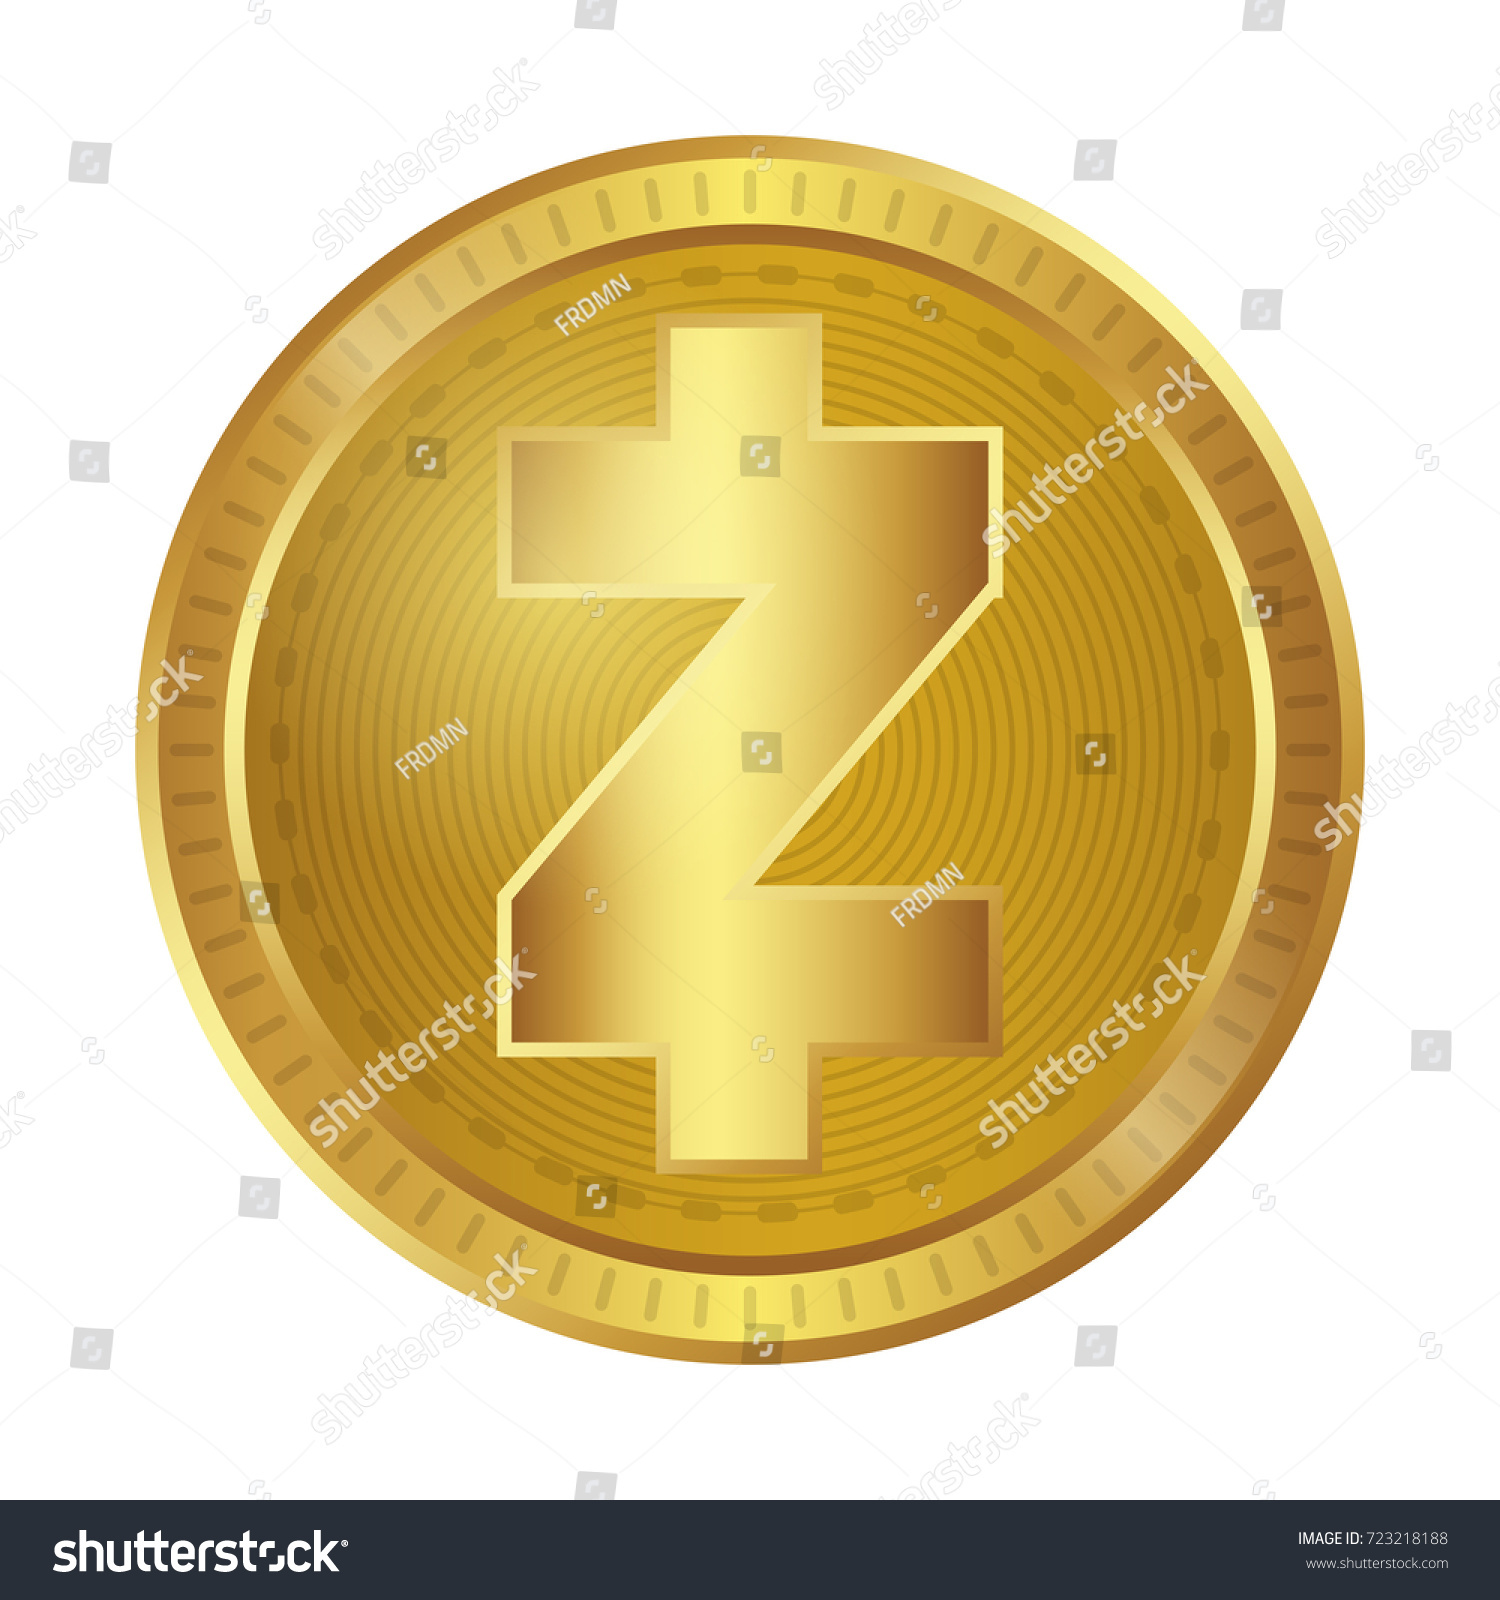 Stock Symbol For Cryptocurrency Zcash Crypto